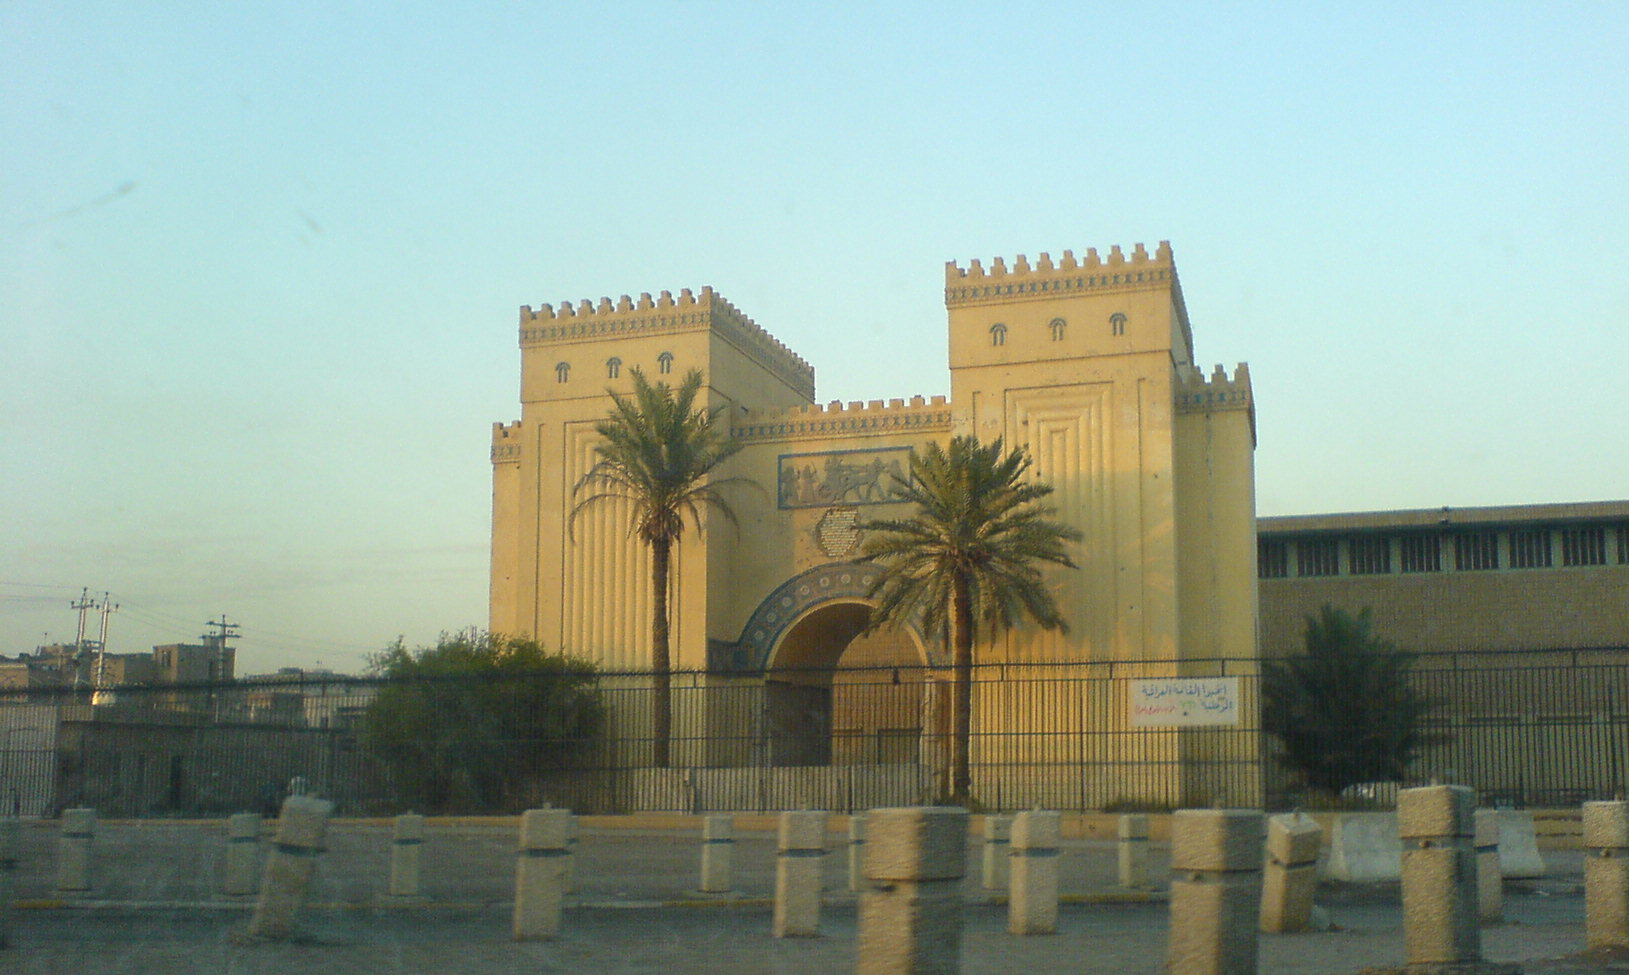 Exterior of the Iraq Museum